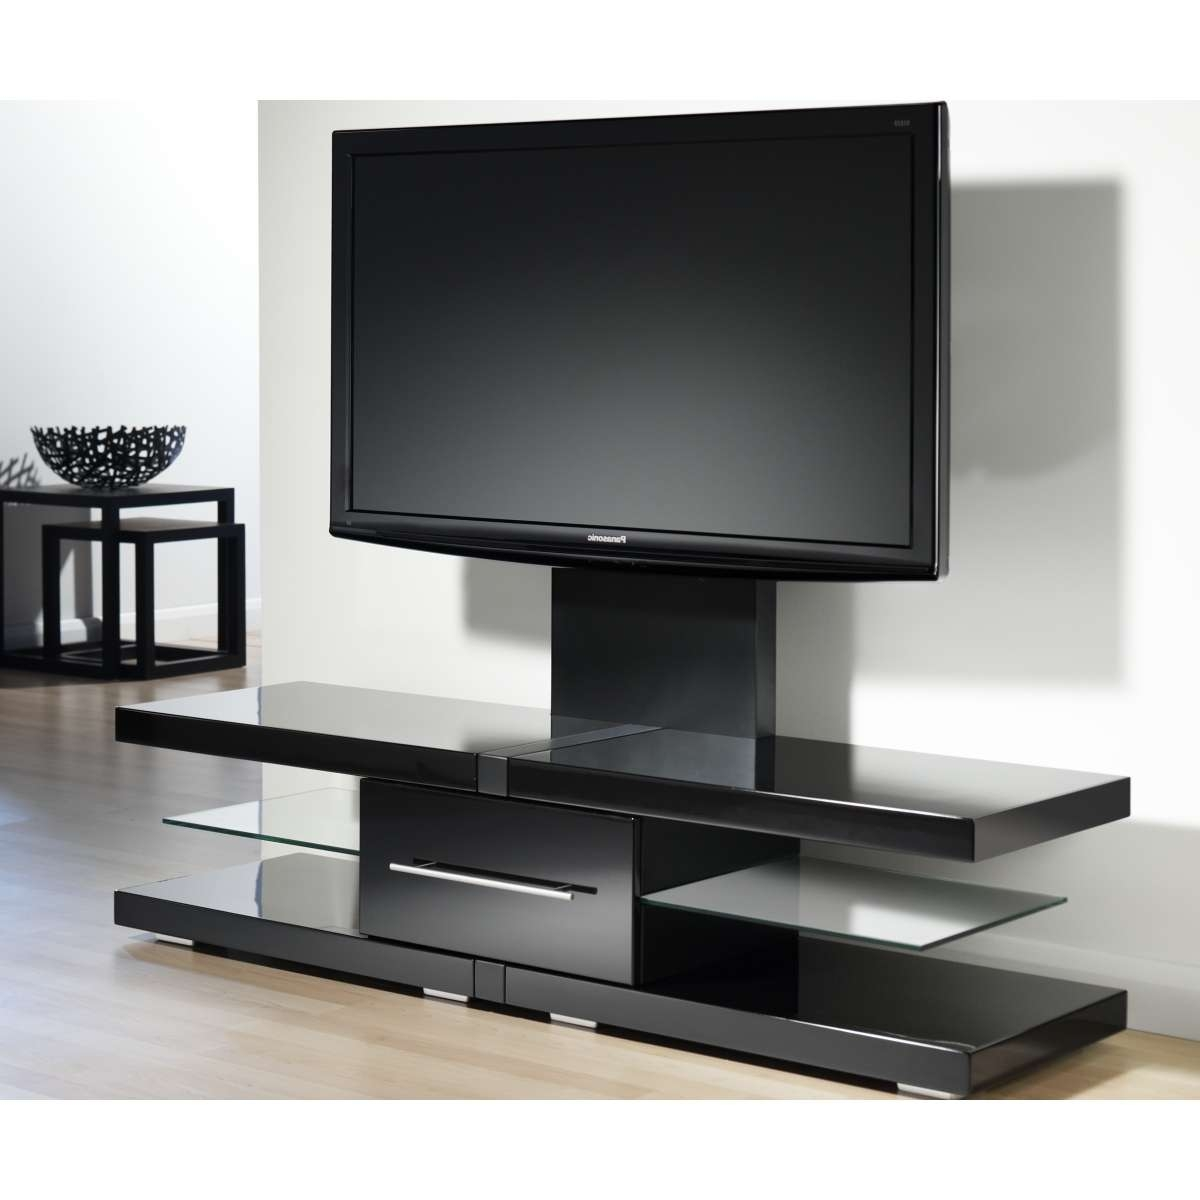 Displaying Gallery Of Tv Stands 38 Inches Wide View 11 Of 15 Photos